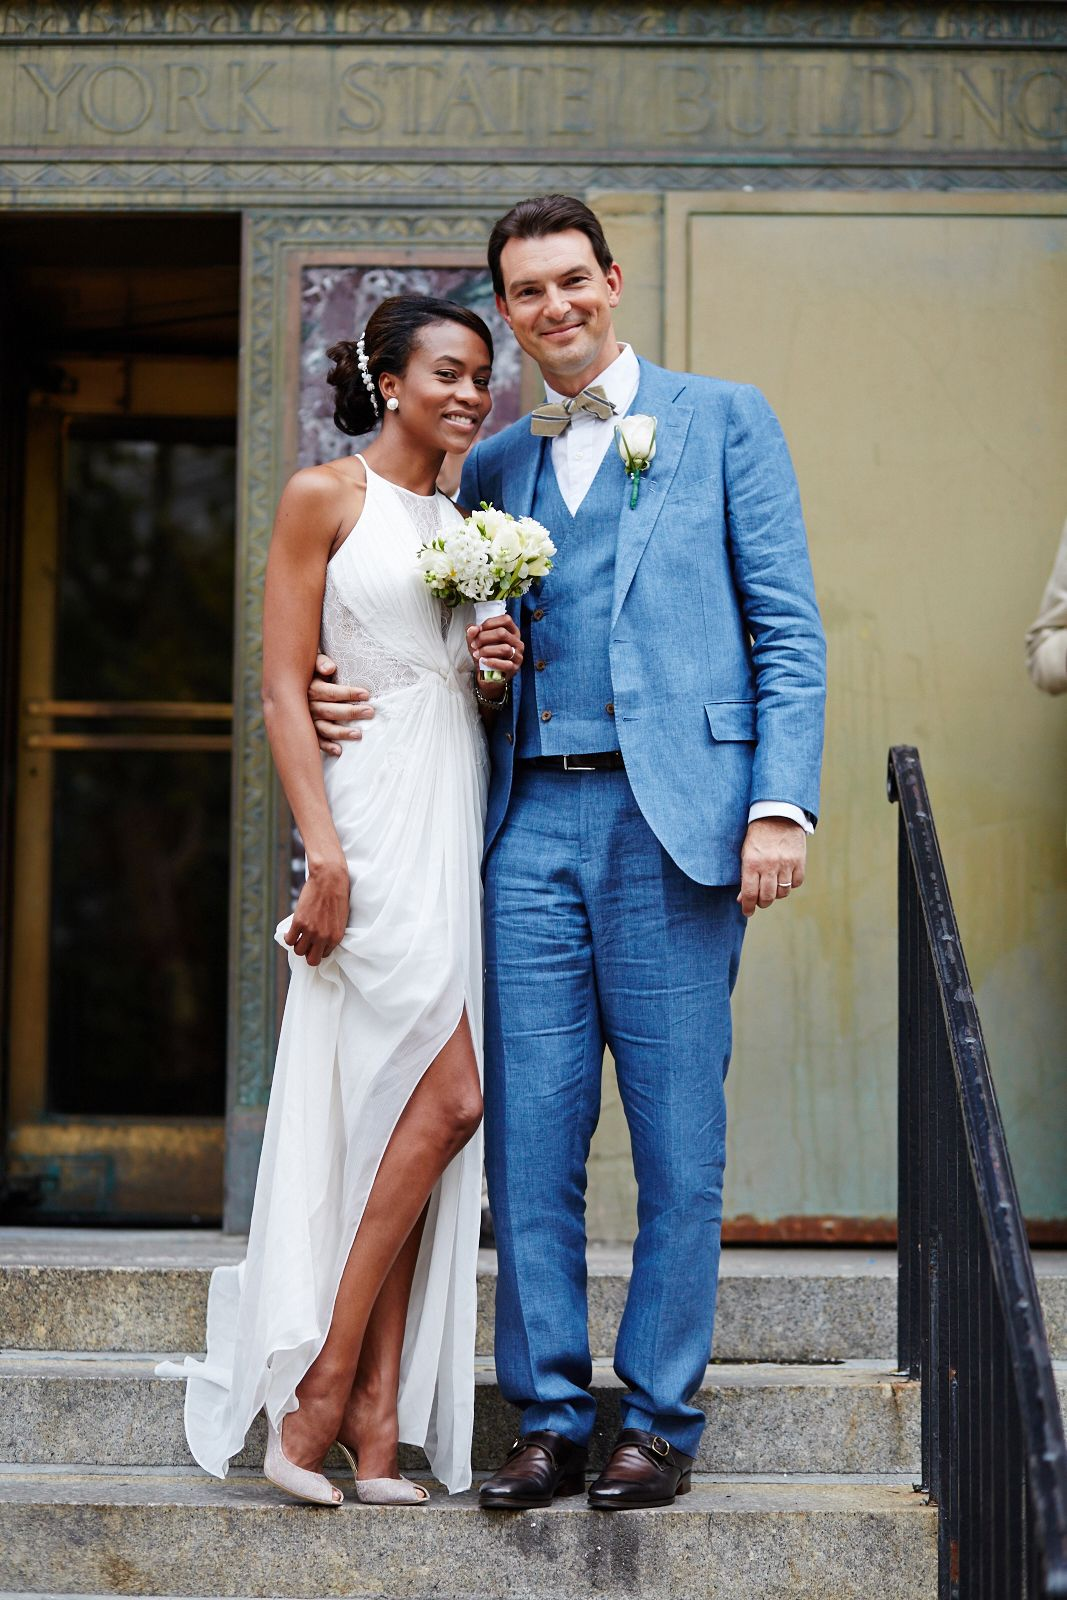 One can still look great real city hall weddings that the